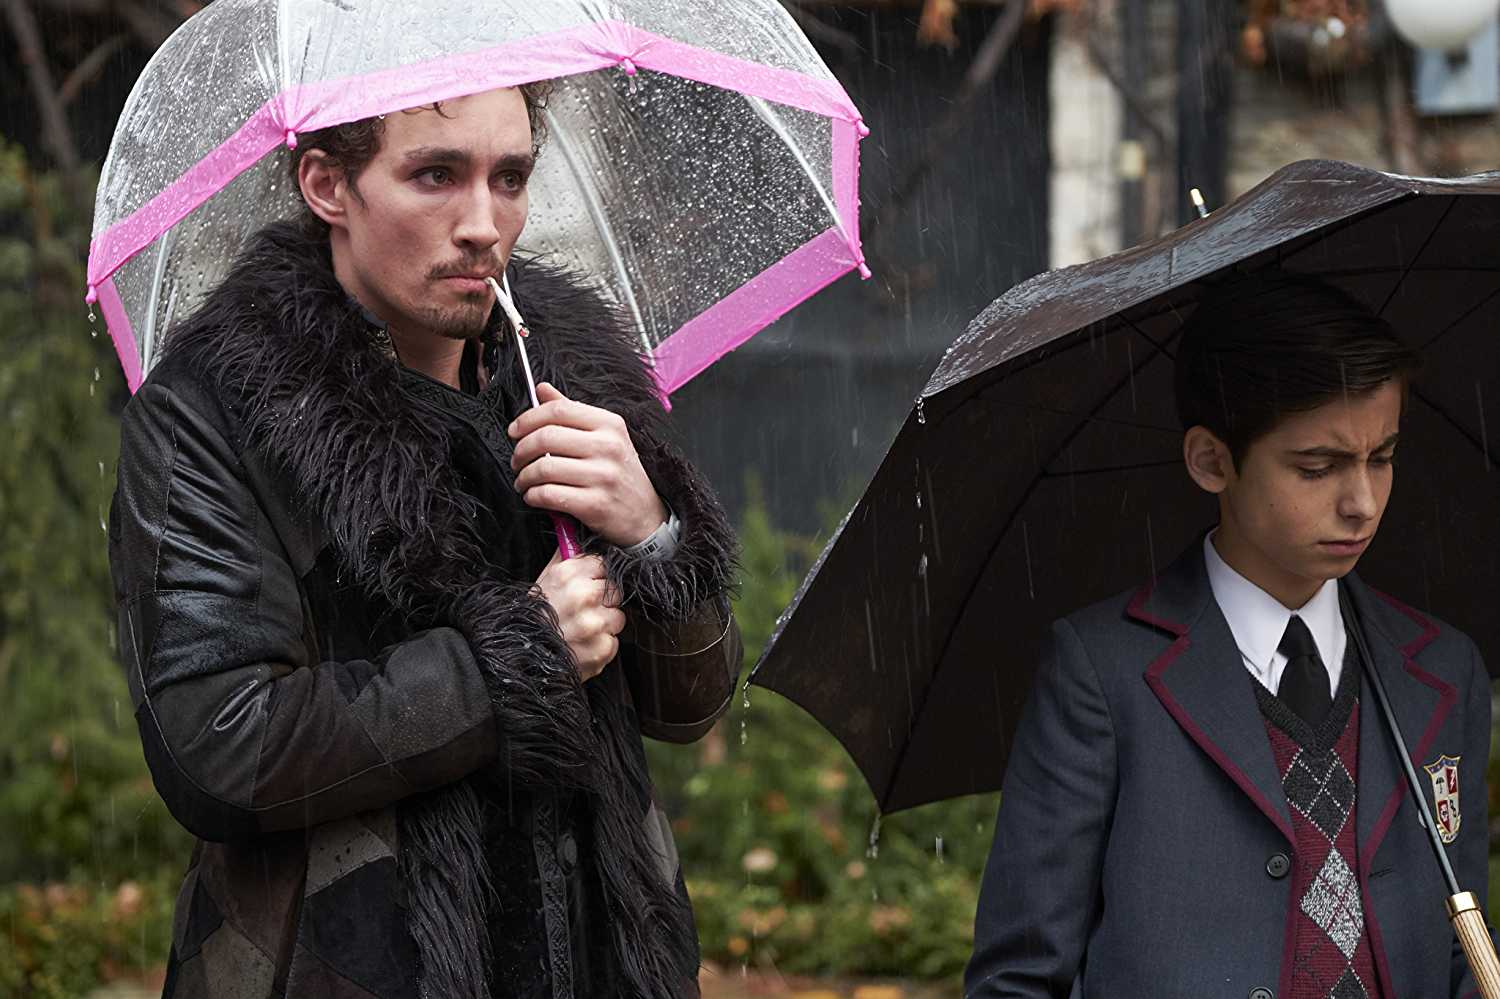 Best buds, Klaus Hargreeves (Robert Sheehan) and Number Five (Aidan Gallagher) mourning the death of their adoptive father, Sir Reginald Hargreeves. (Source: IMDB)